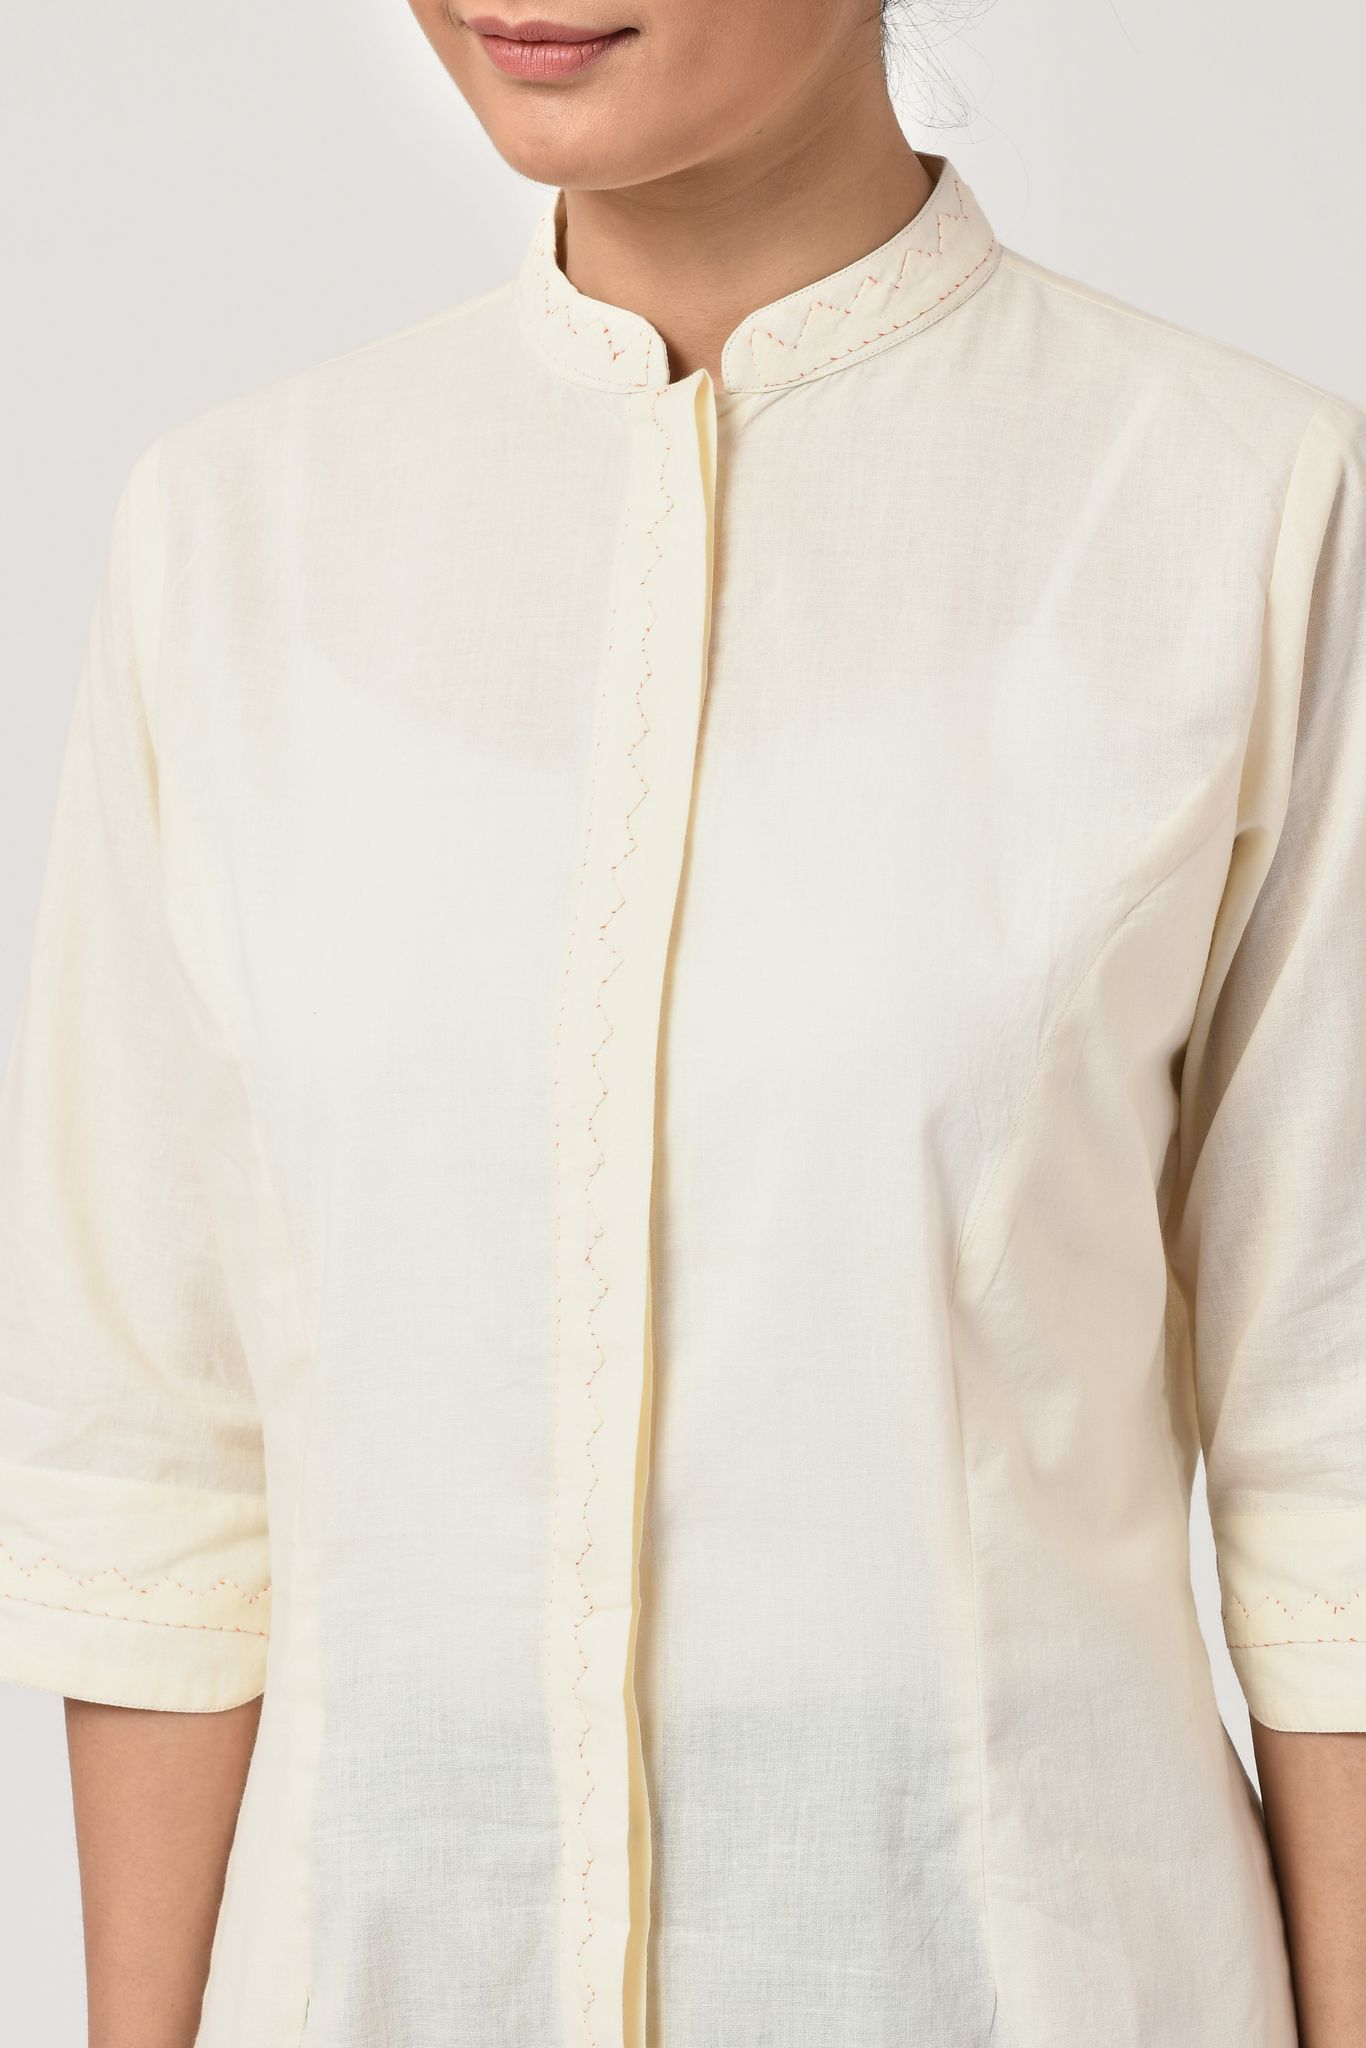 Applique Natural Shirt